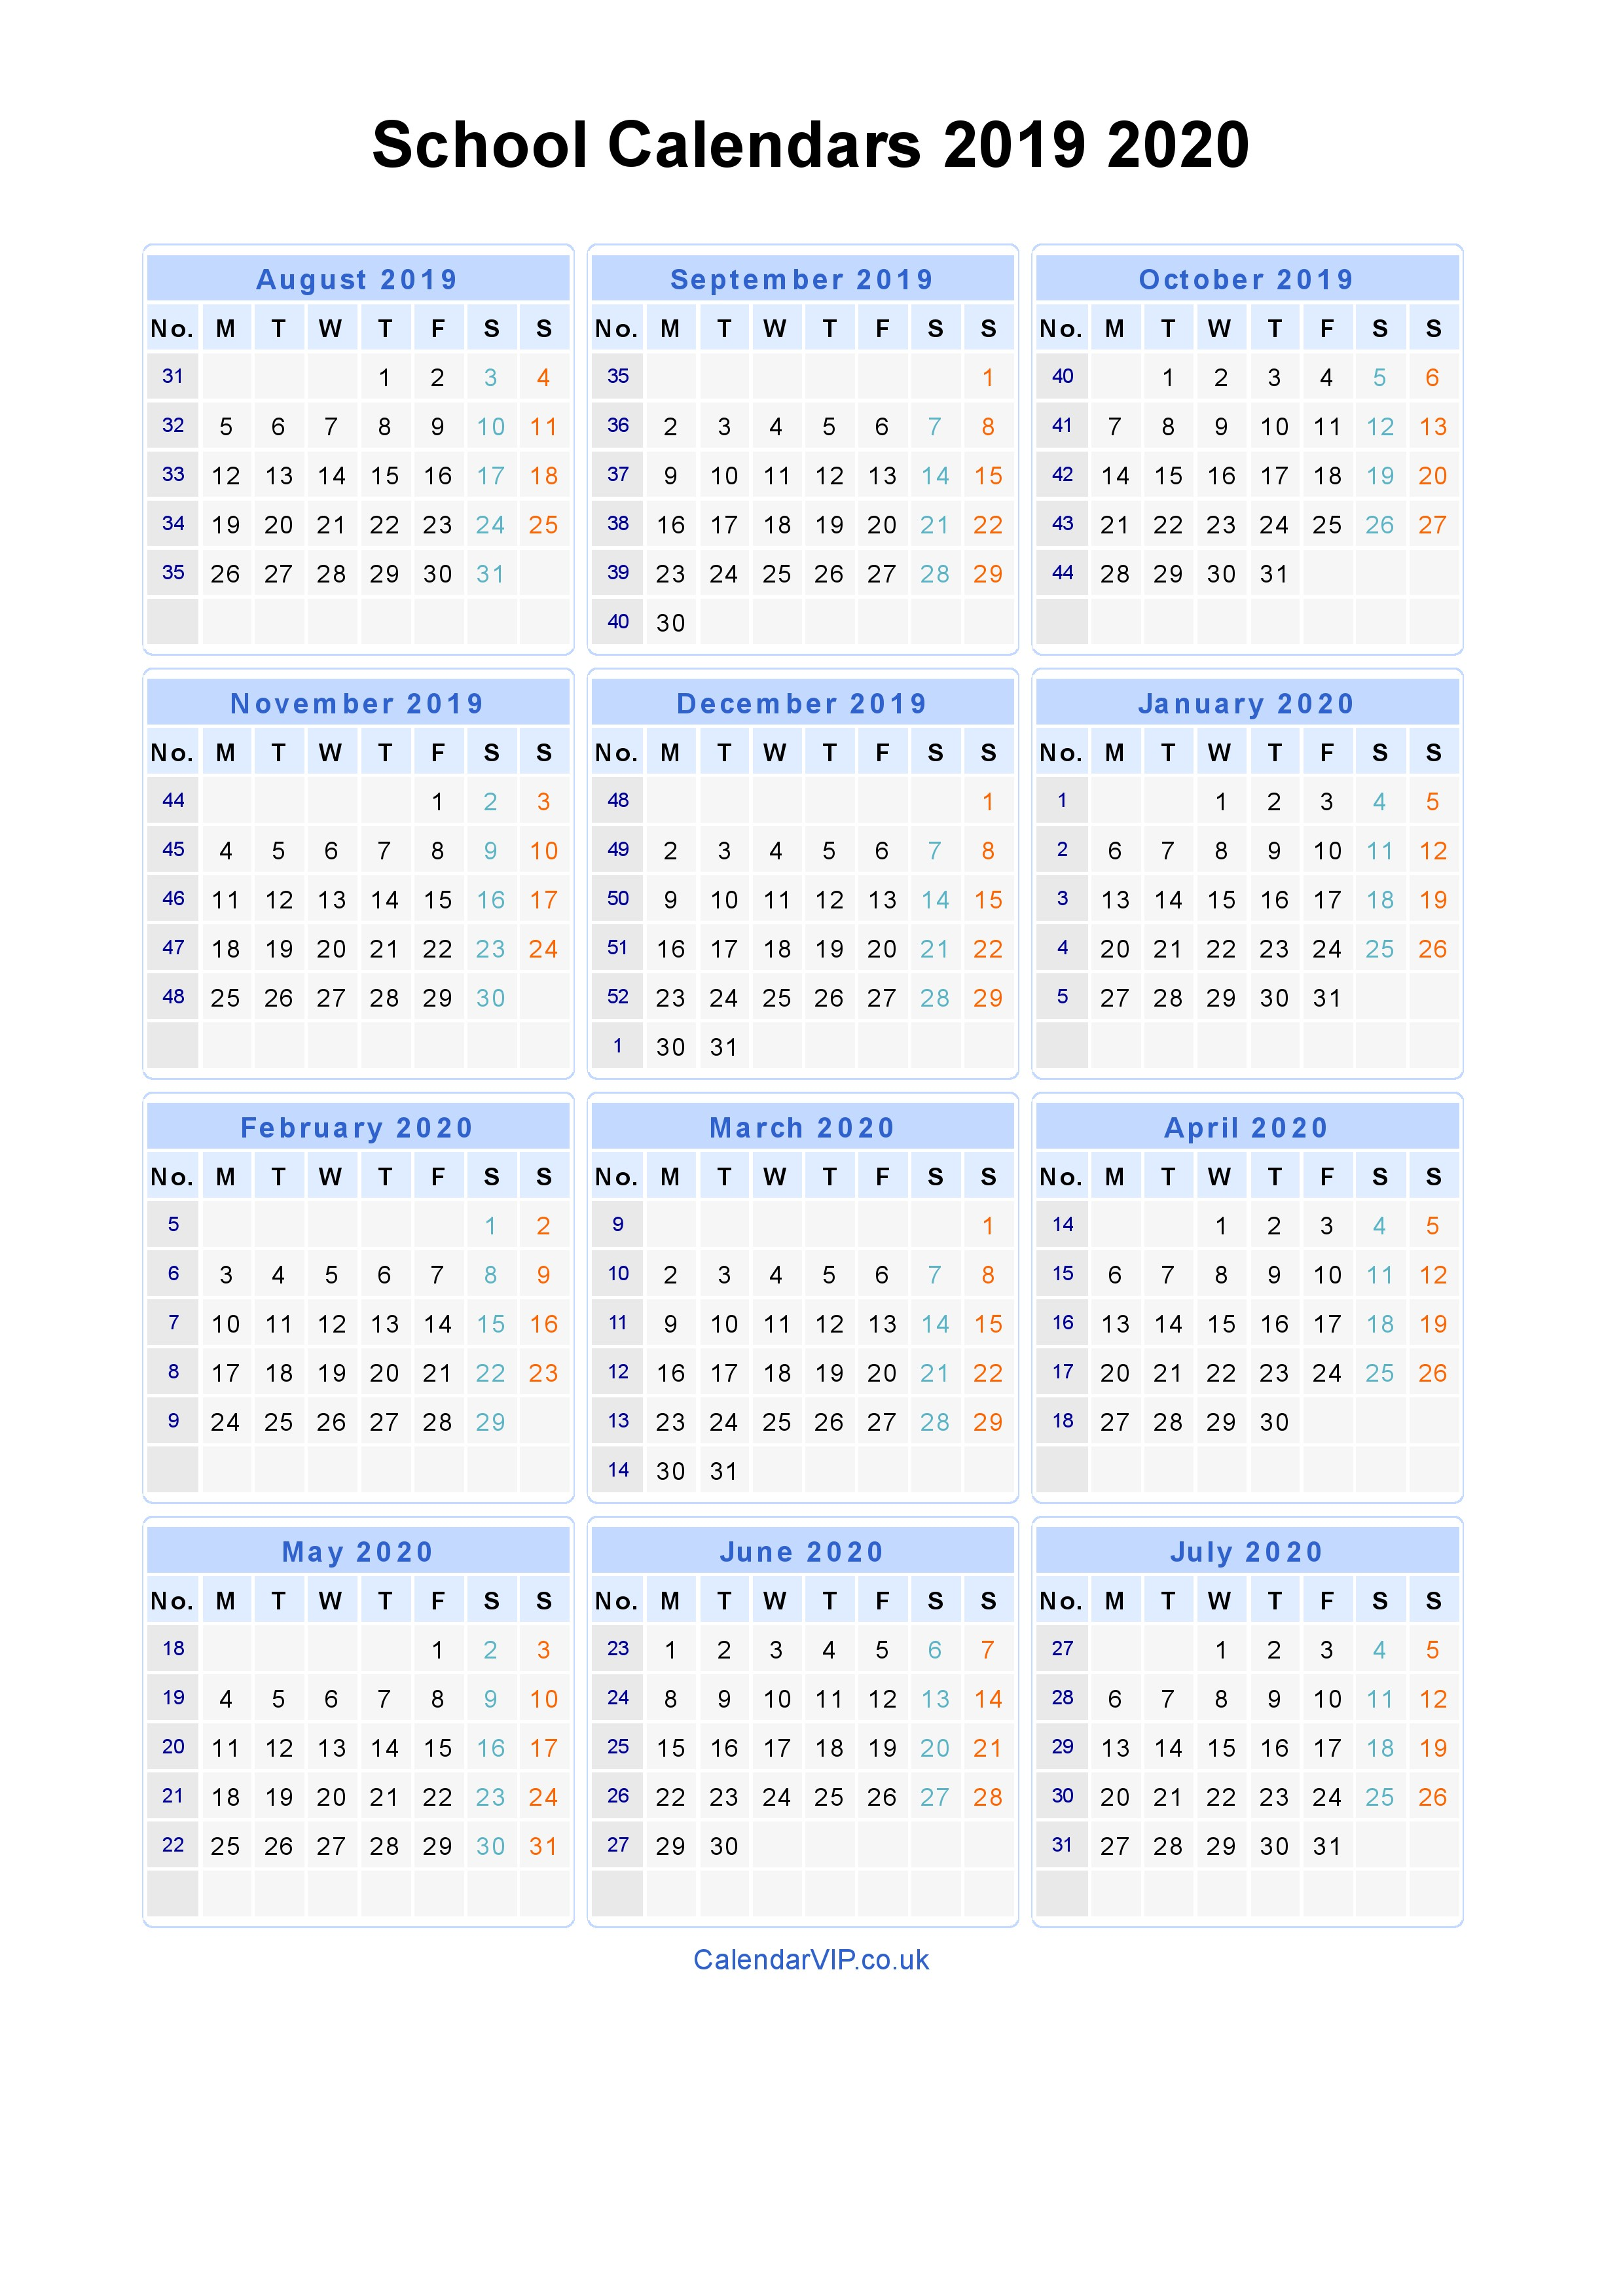 Calendar For Year 2019 Uk With School Calendars 2020 From August To July